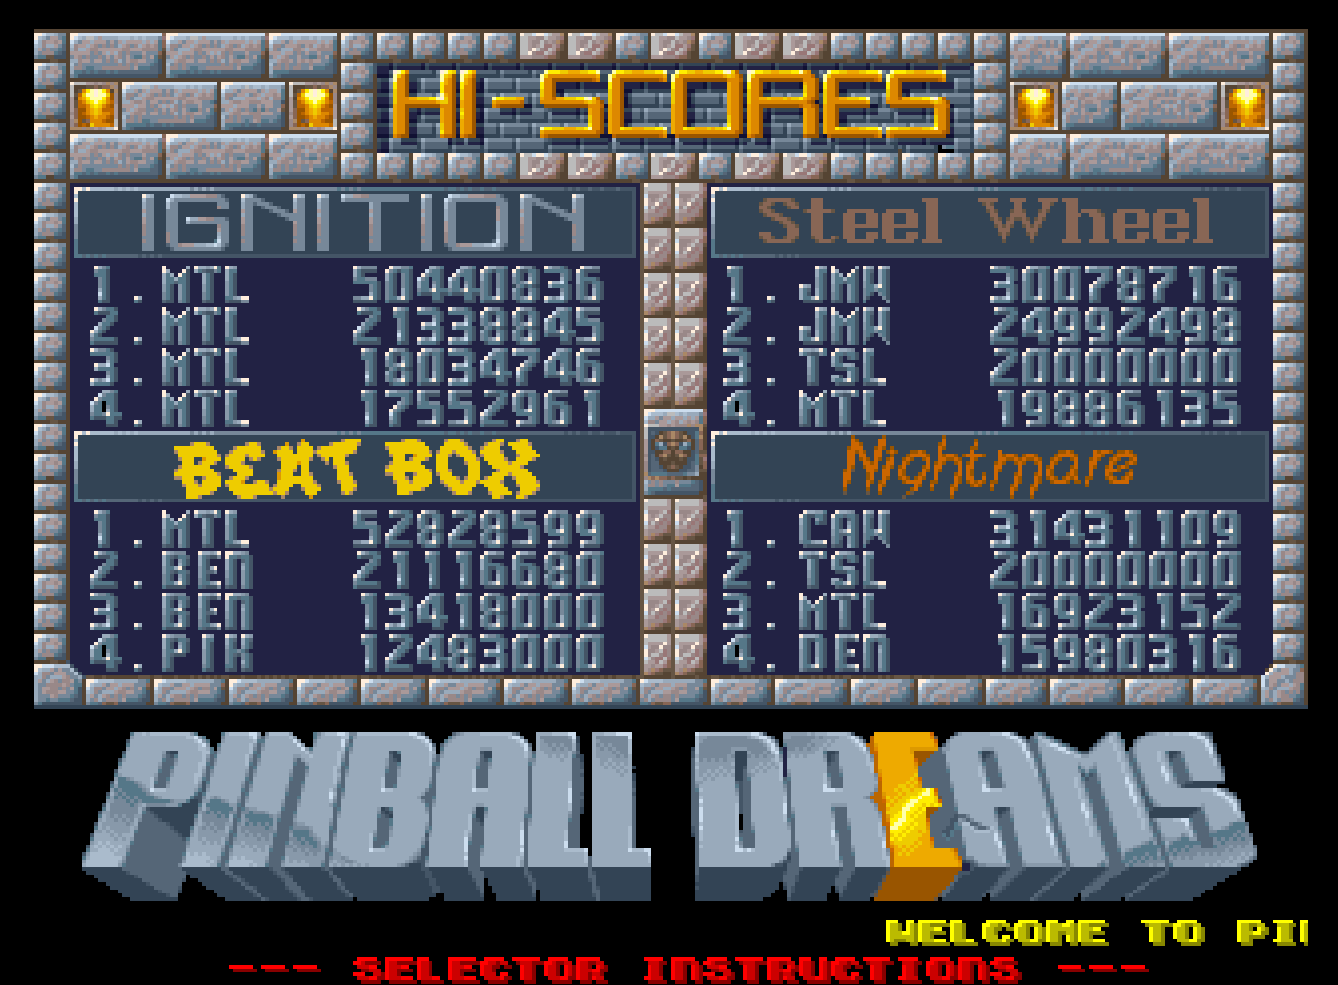 Mantalow: Pinball Dreams: Ignition (Amiga Emulated) 50,440,836 points on 2016-09-20 05:49:34